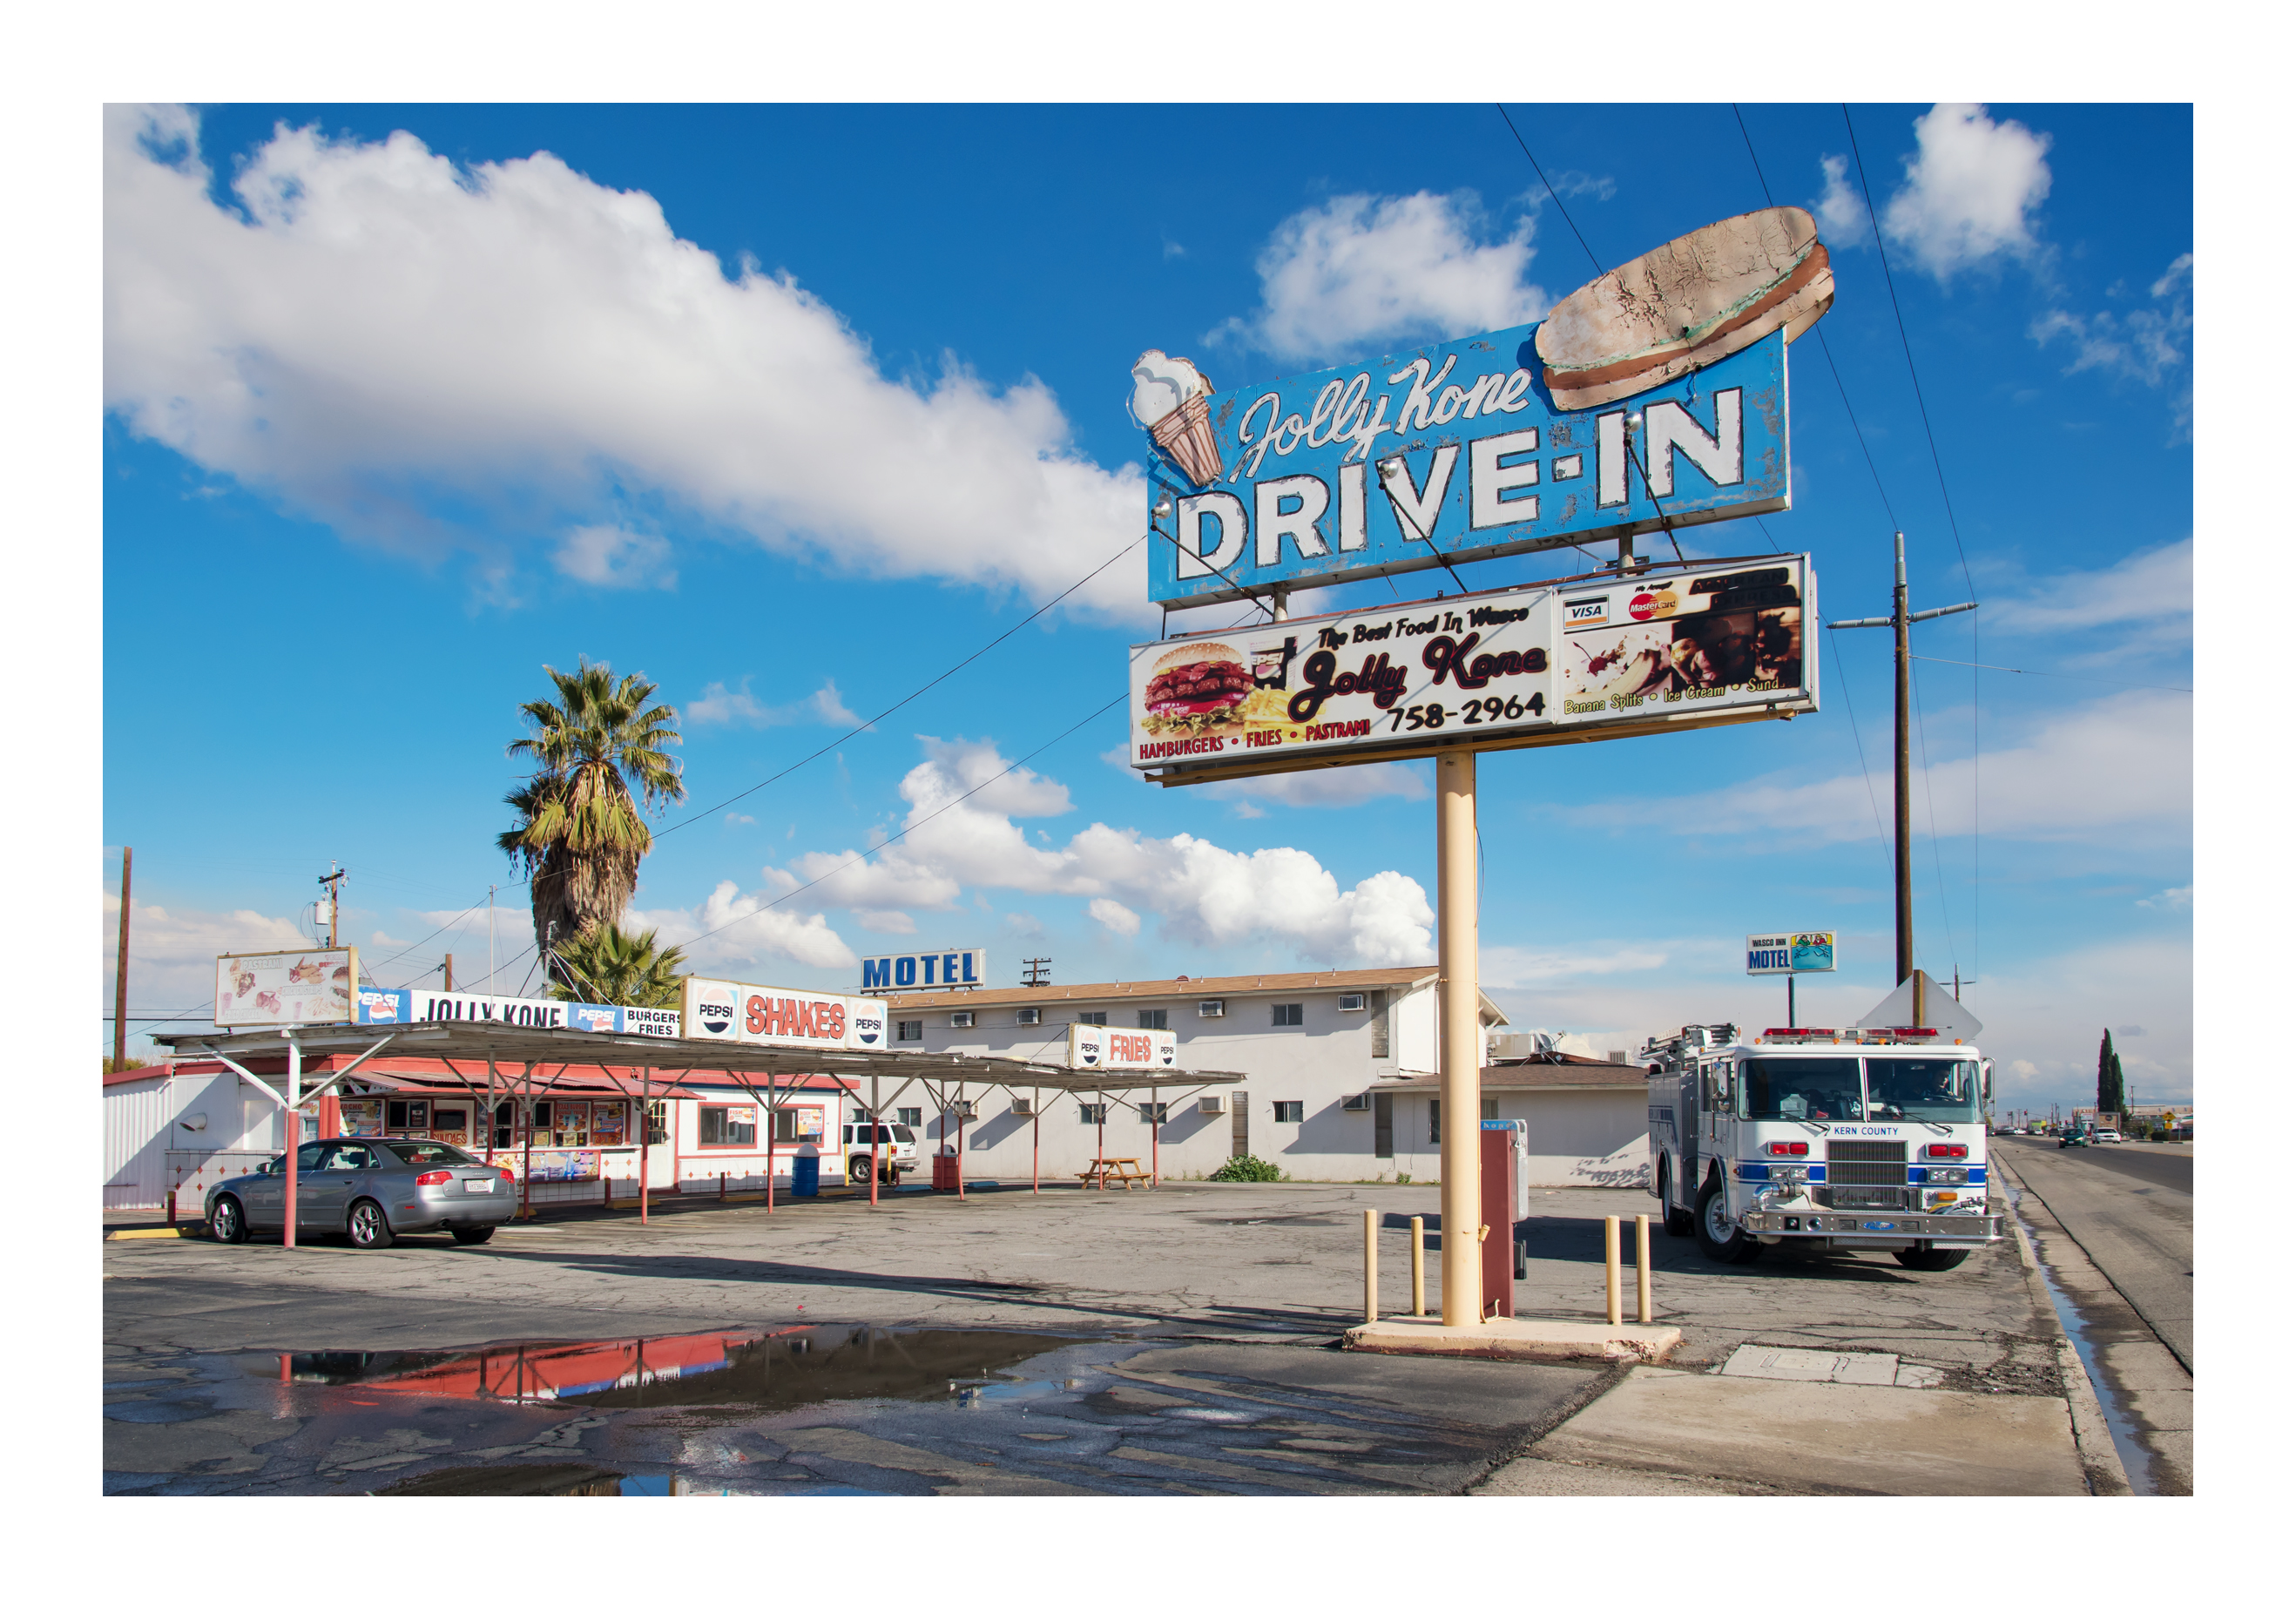 Jolly Kone Drive-In - 1212 California 46, Wasco, California U.S.A. - January 9, 2018